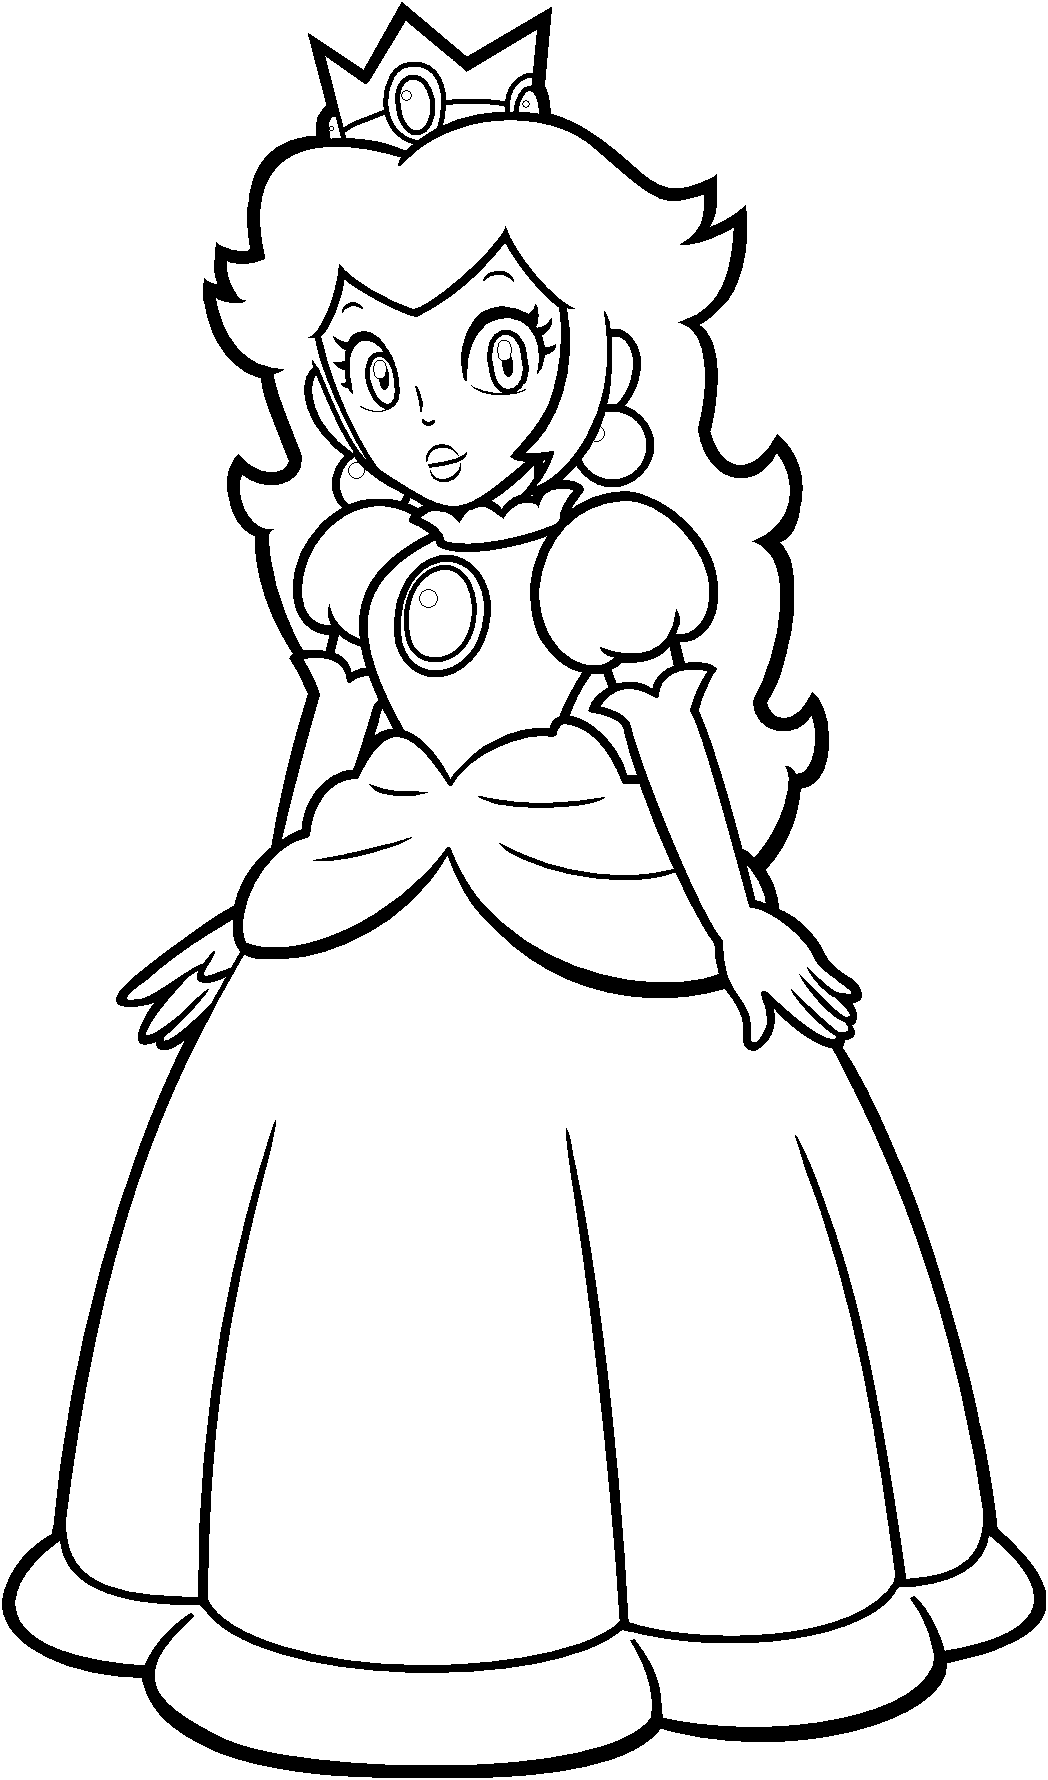 peach printable coloring pages - photo#19